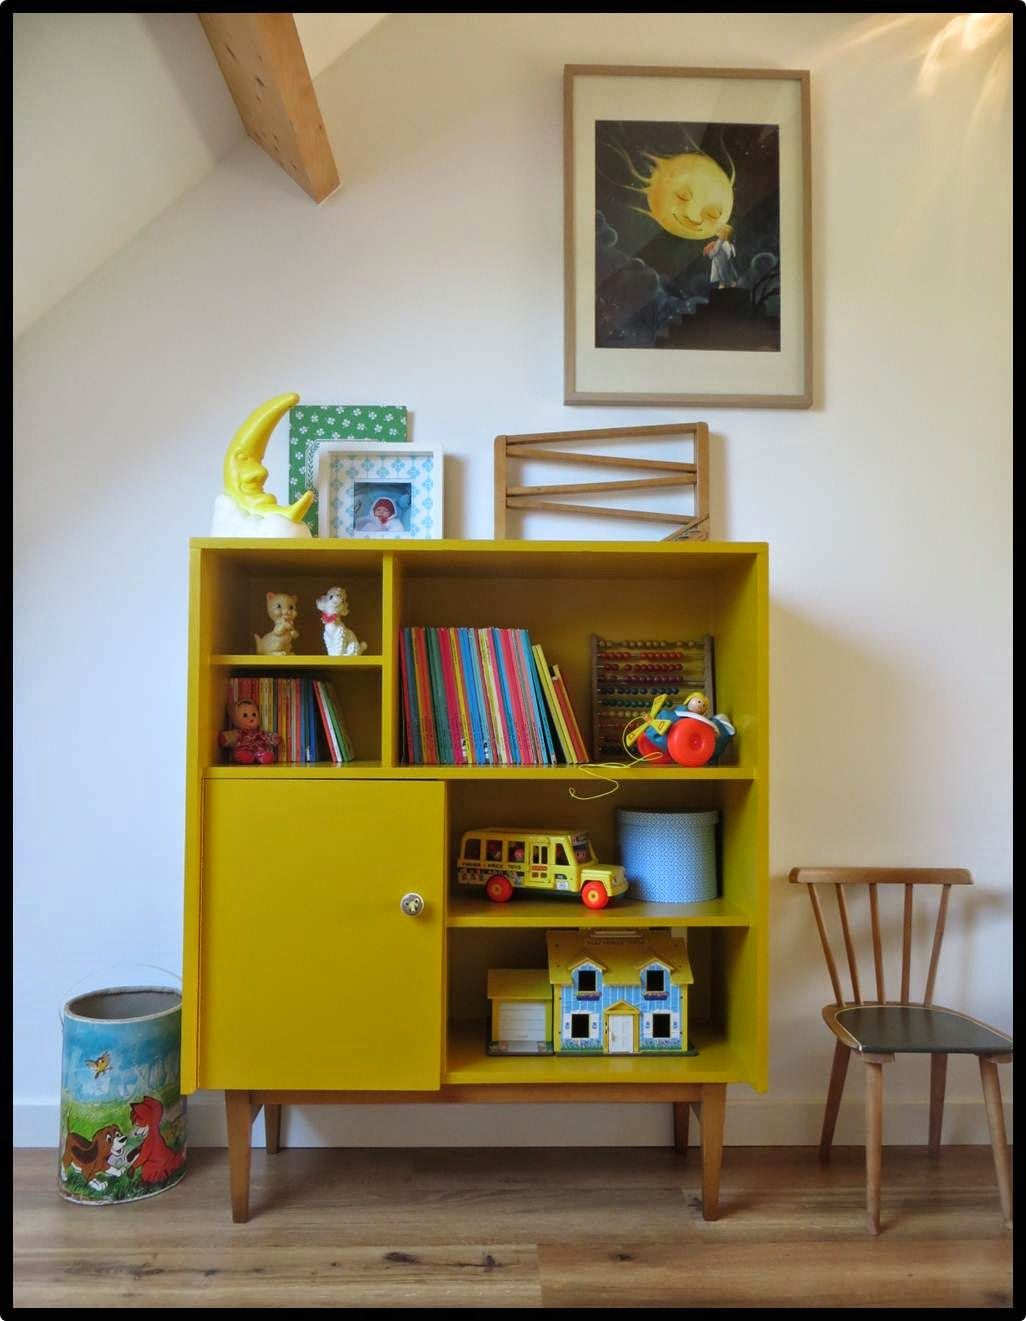 Kids Bedroom Shelving Petrolmint Yellow Cabinet Diy K I D S S P A C E S